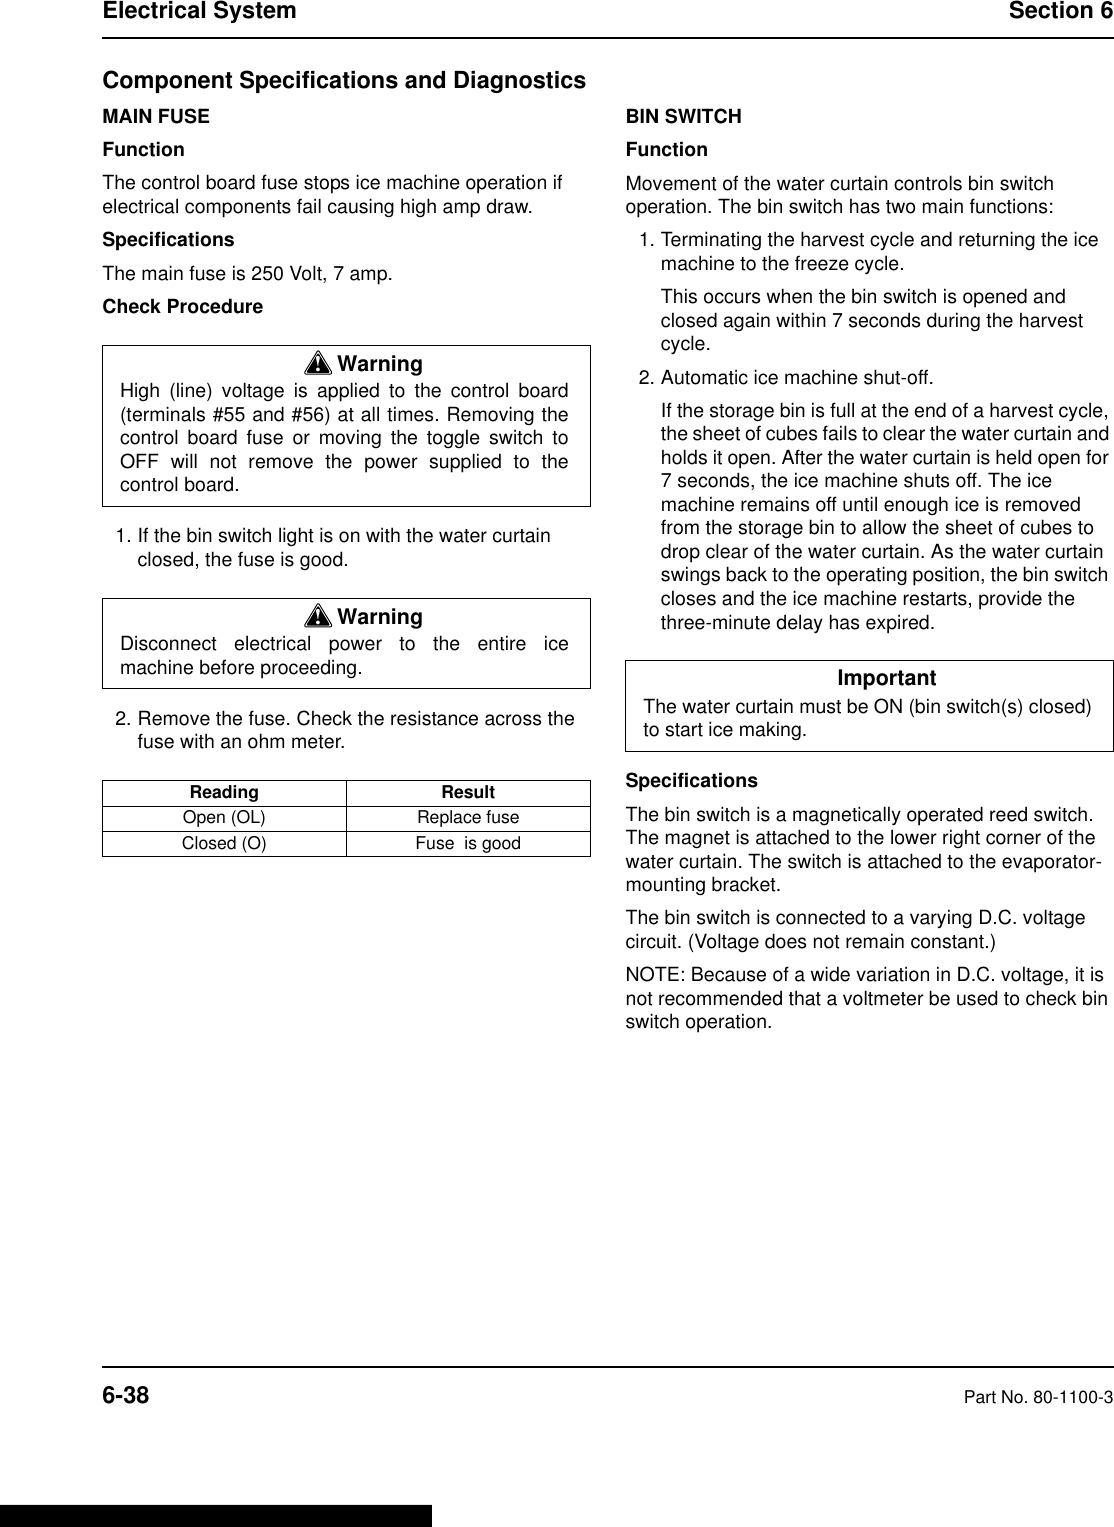 Manitowoc Qr0320A Service Manual 1003440 ManualsLib Makes It Easy To on